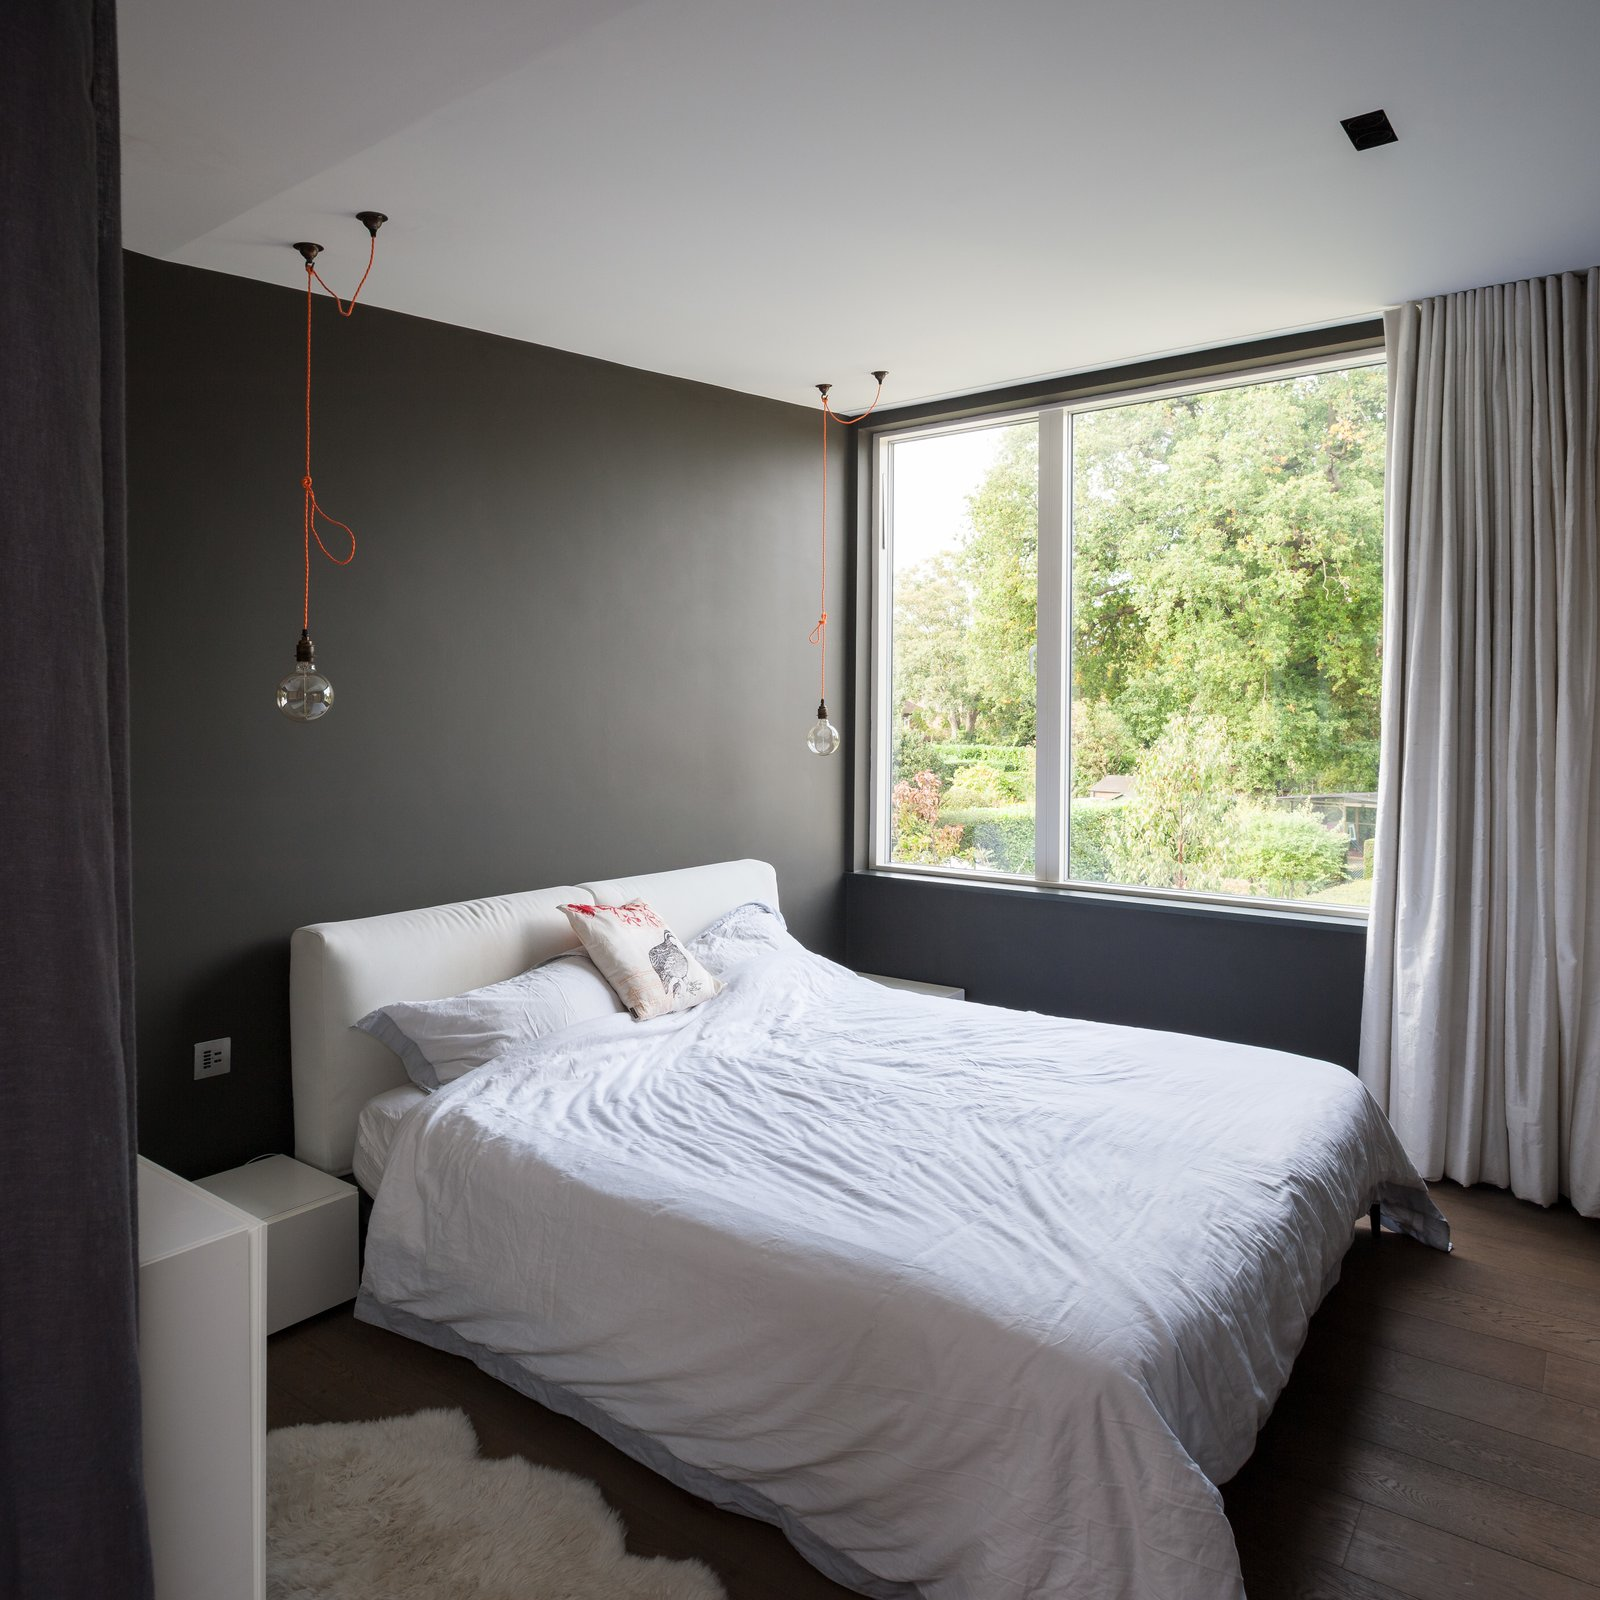 Bedroom with two hanging ceiling pendant bulb lights by each side of bed.